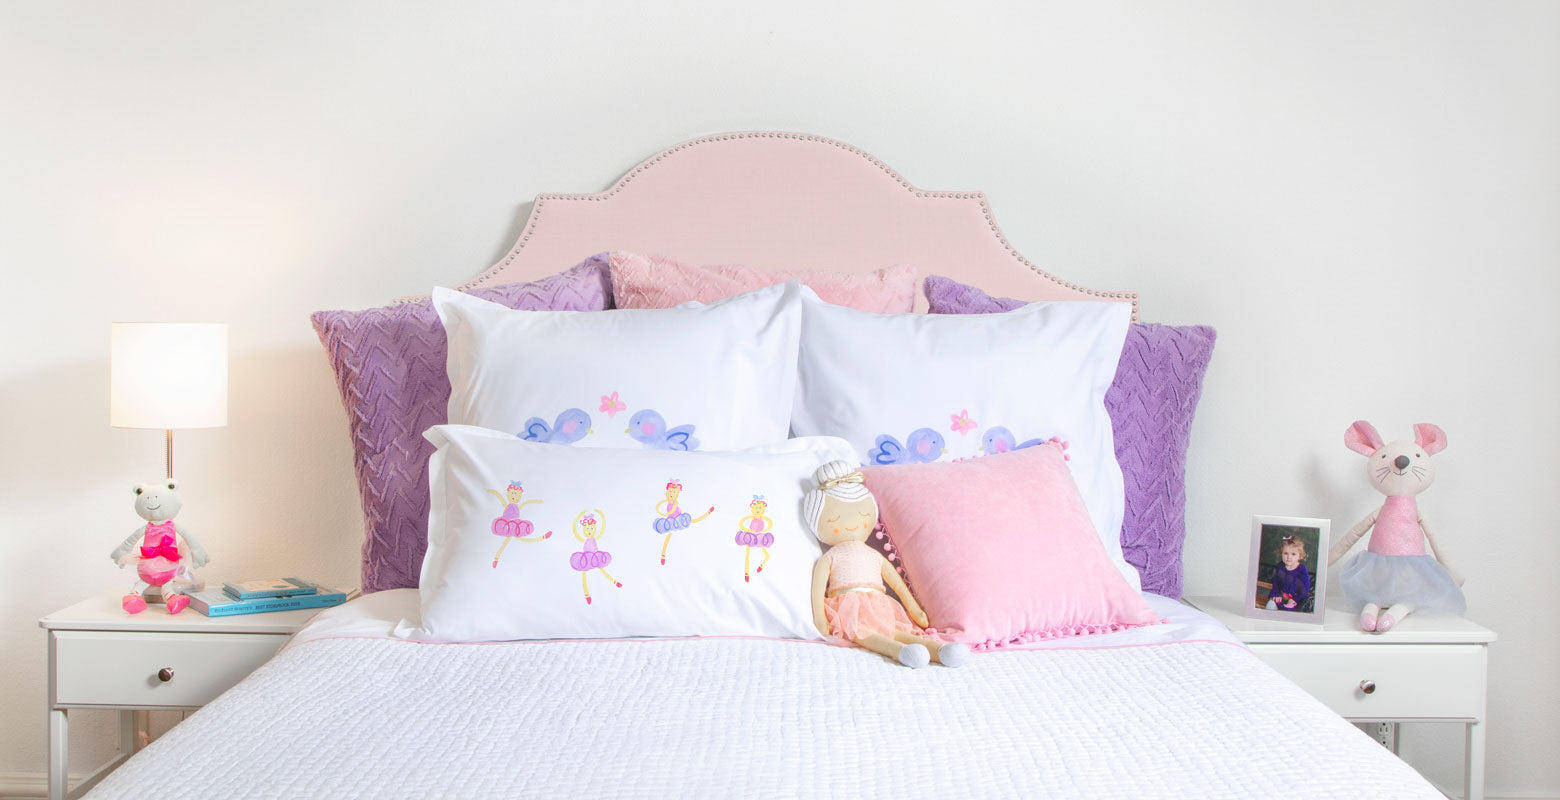 Ballet Royale - Personalized Kids Pillowcase Collection-Di Lewis